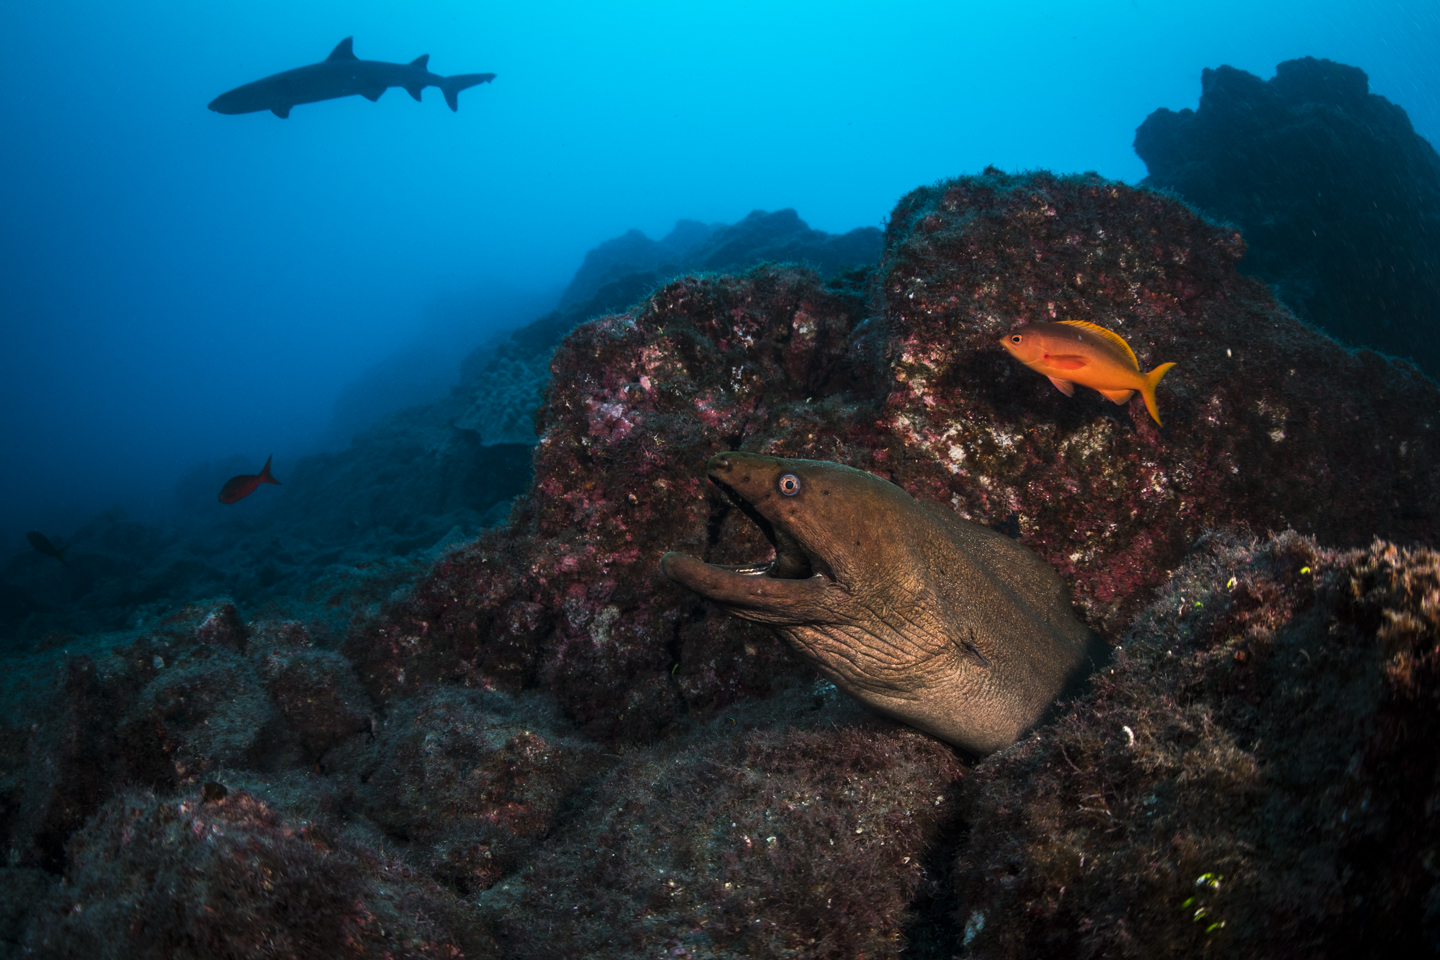 A moray looks out of its crevice while being by a clarion fish, while a white tipped reef shark swims by overhead